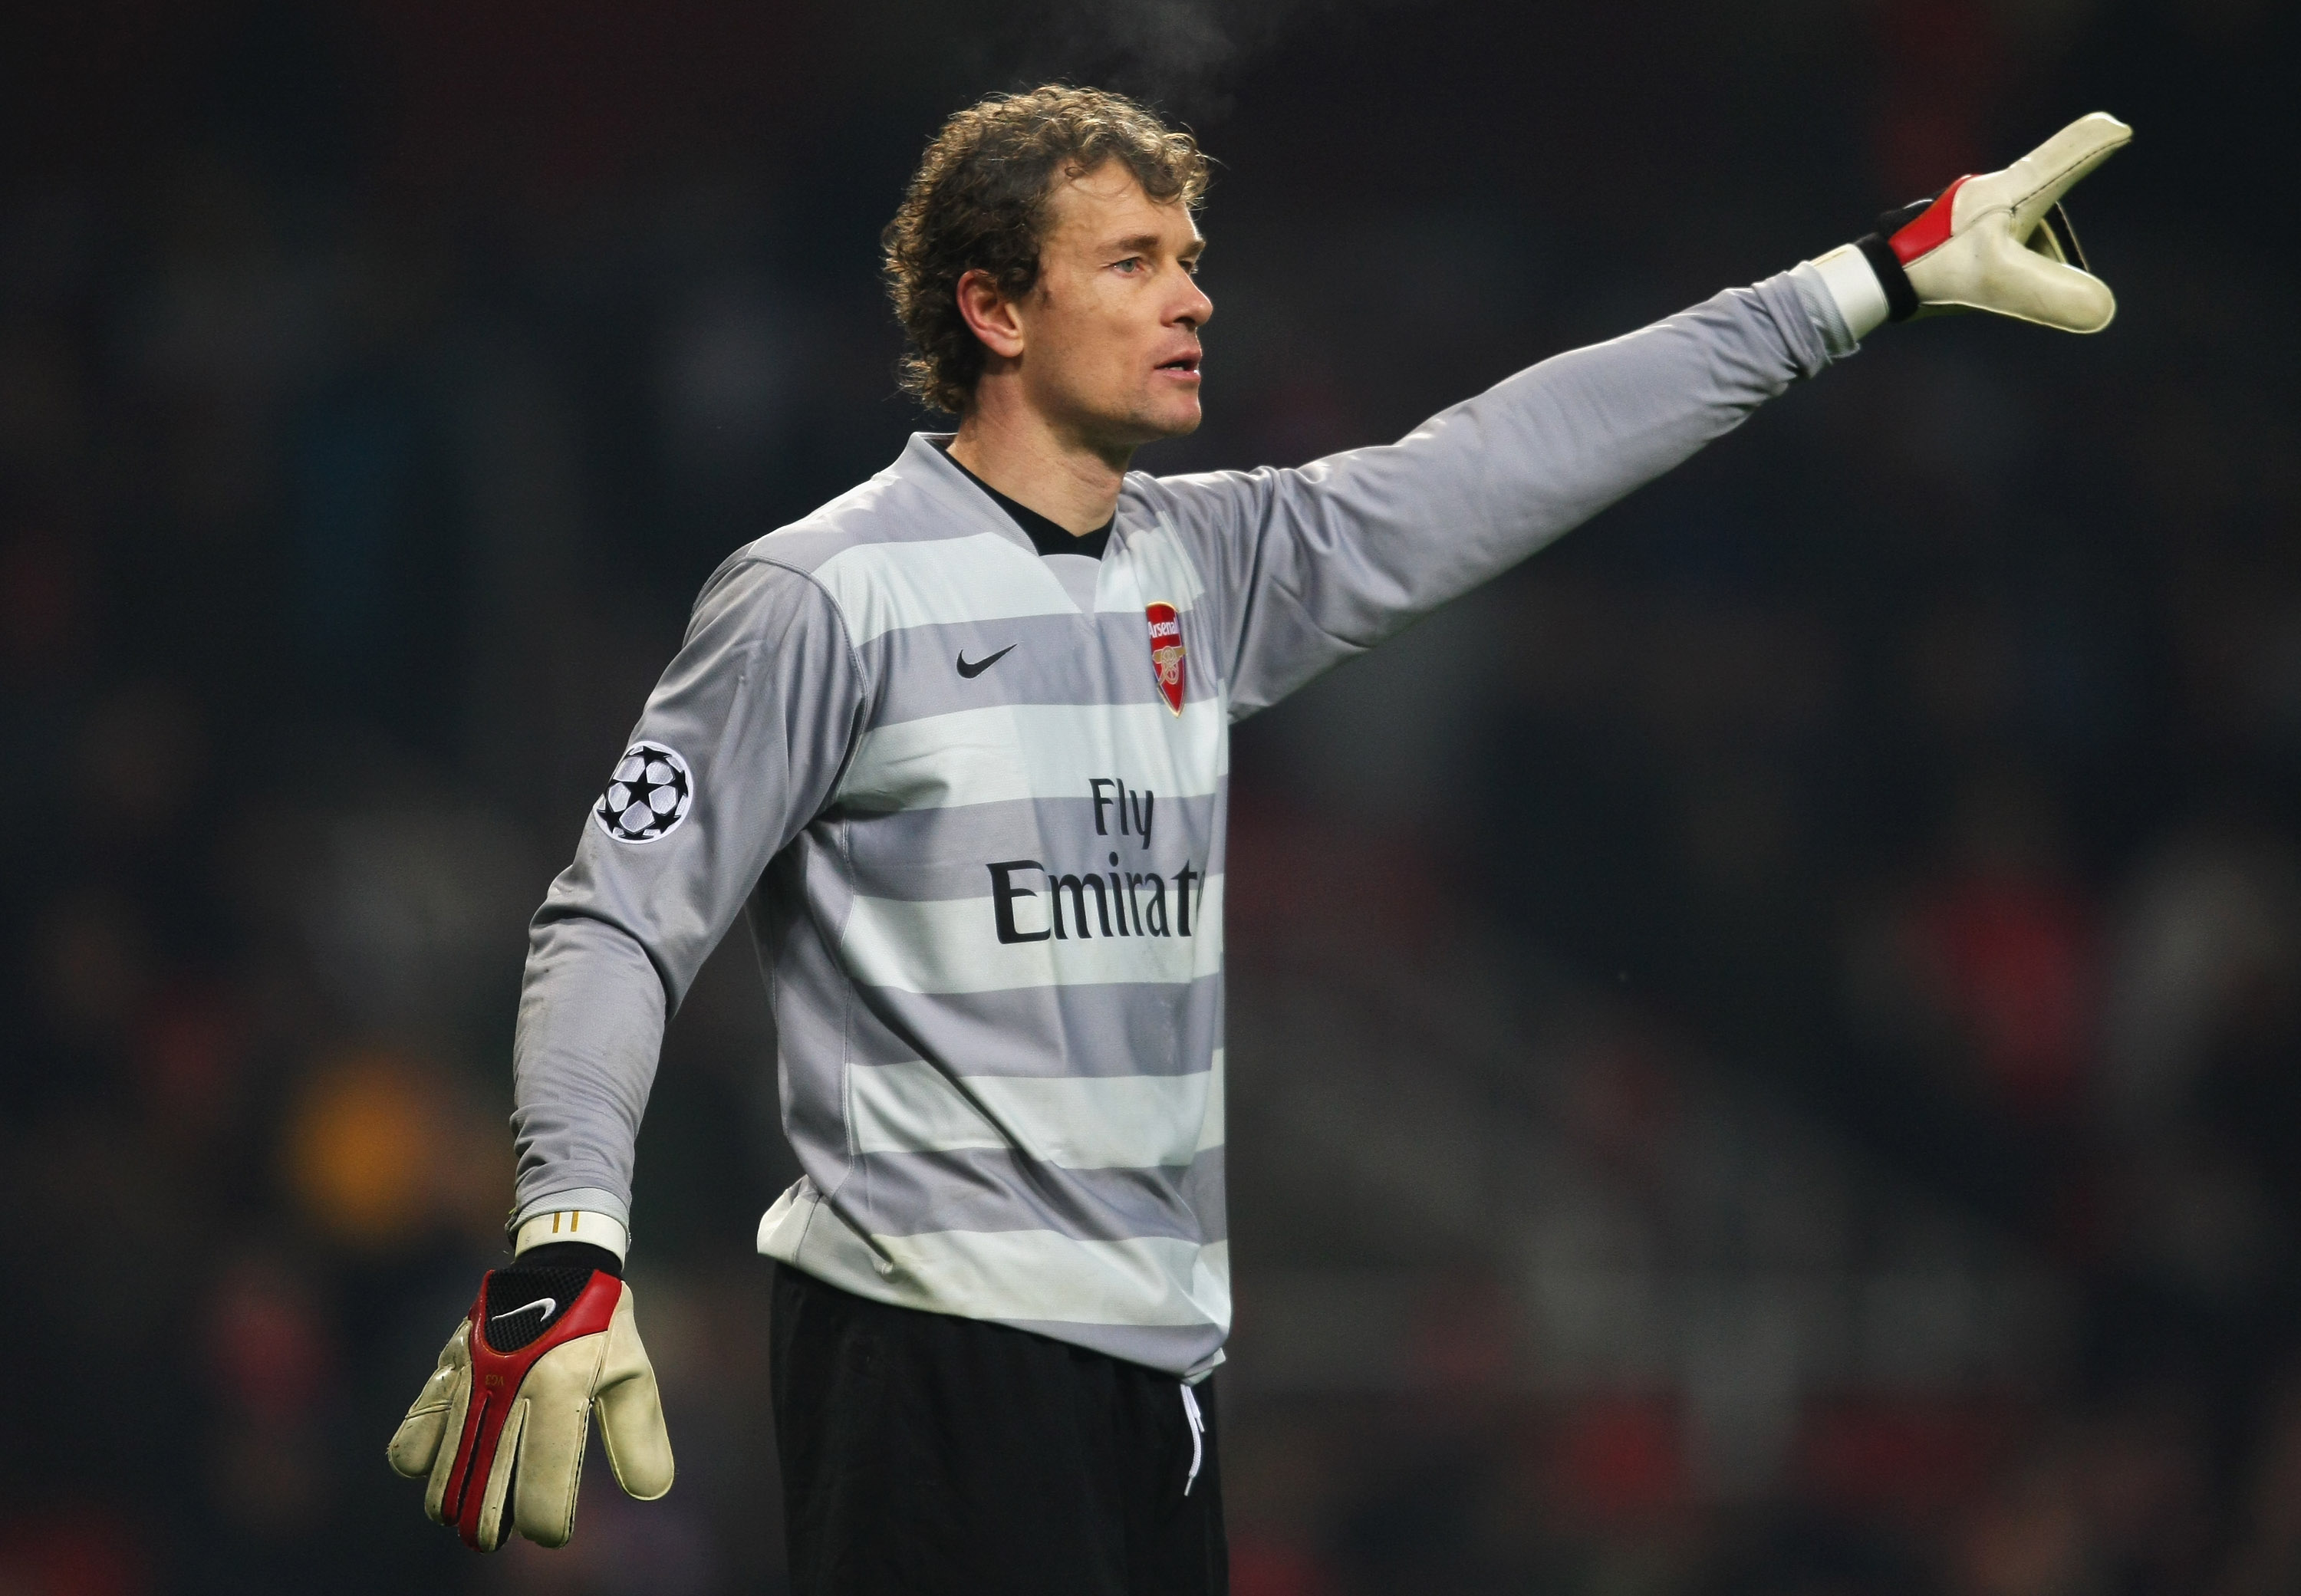 LONDON - DECEMBER 12: Jens Lehmann of Arsenal gestures during the UEFA Champions League Group H match between Arsenal and Steaua Bucharest at the Emirates Stadium on December 12, 2007 in London, England. (Photo by Shaun Botterill/Getty Images)